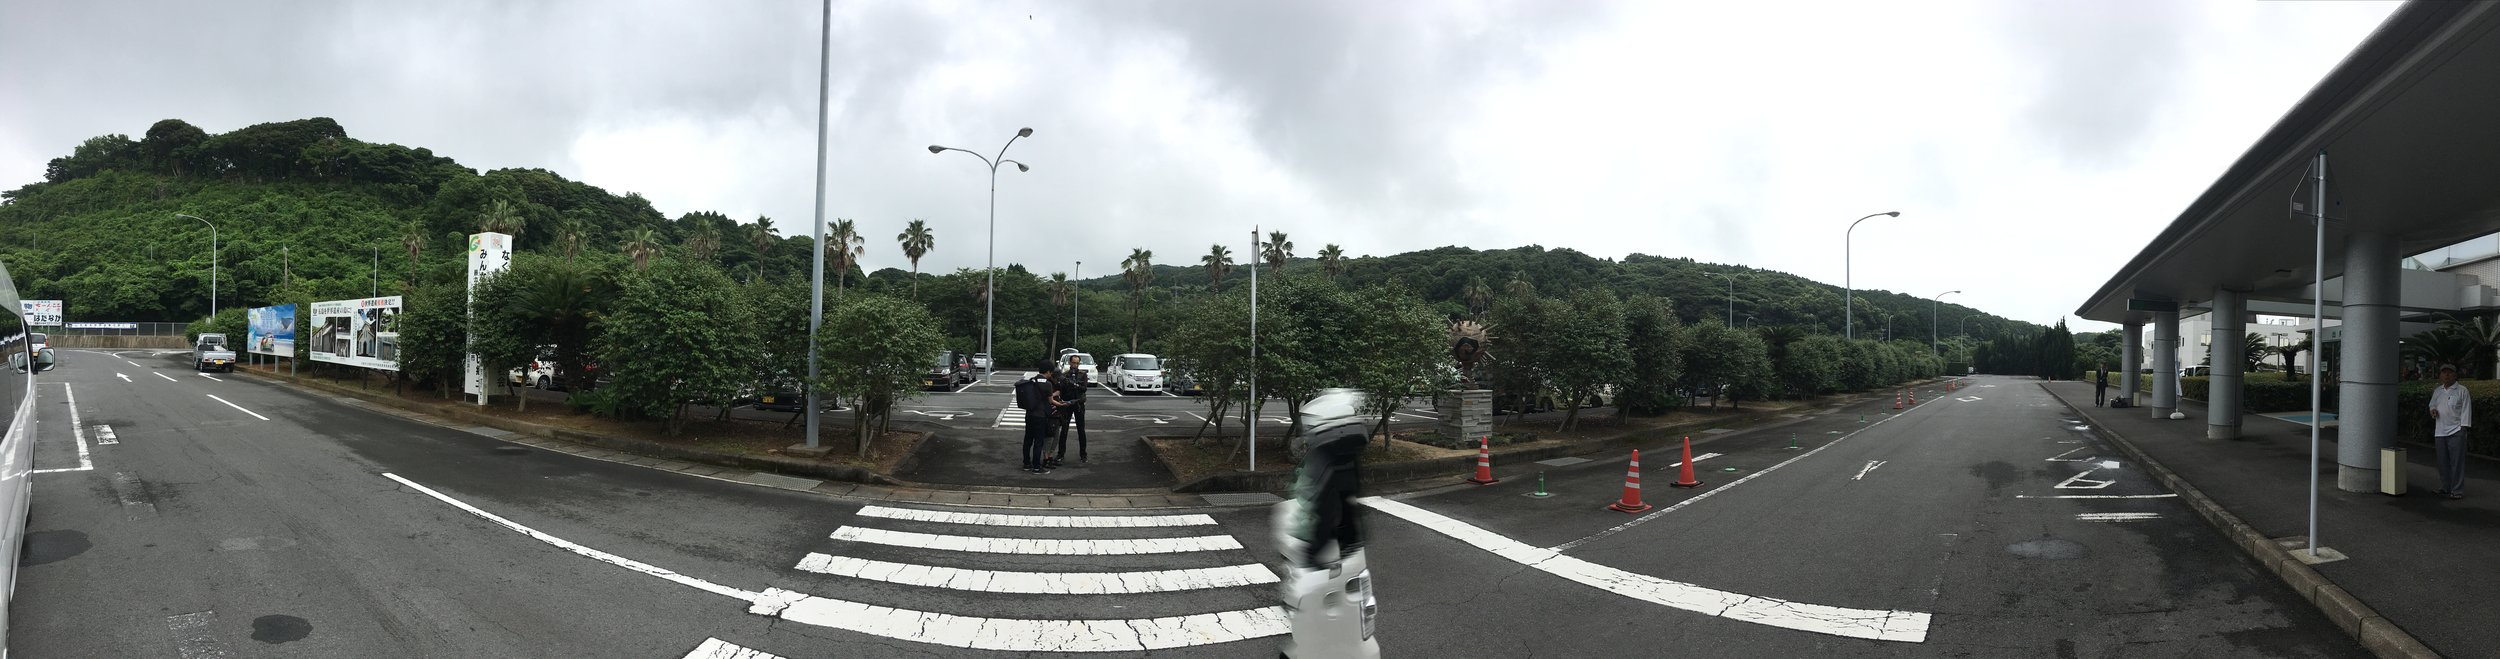 I took this panoramic at the airport. A car drove by while I was taking it, making it look like there's a stormtrooper ghost walking by.